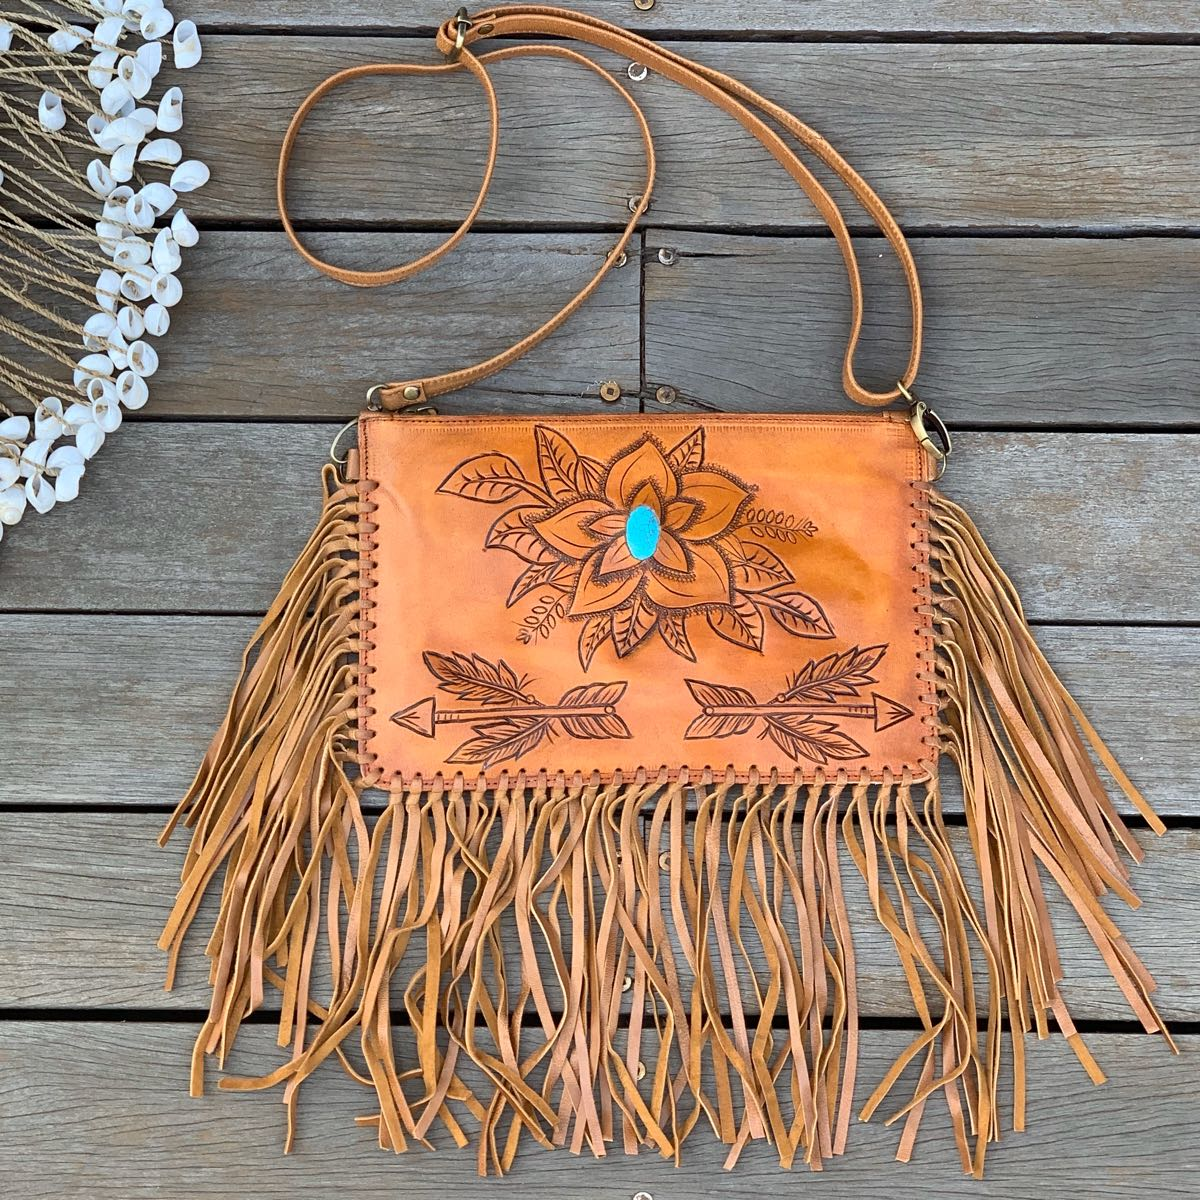 FREE SPIRIT FRINGE BAG